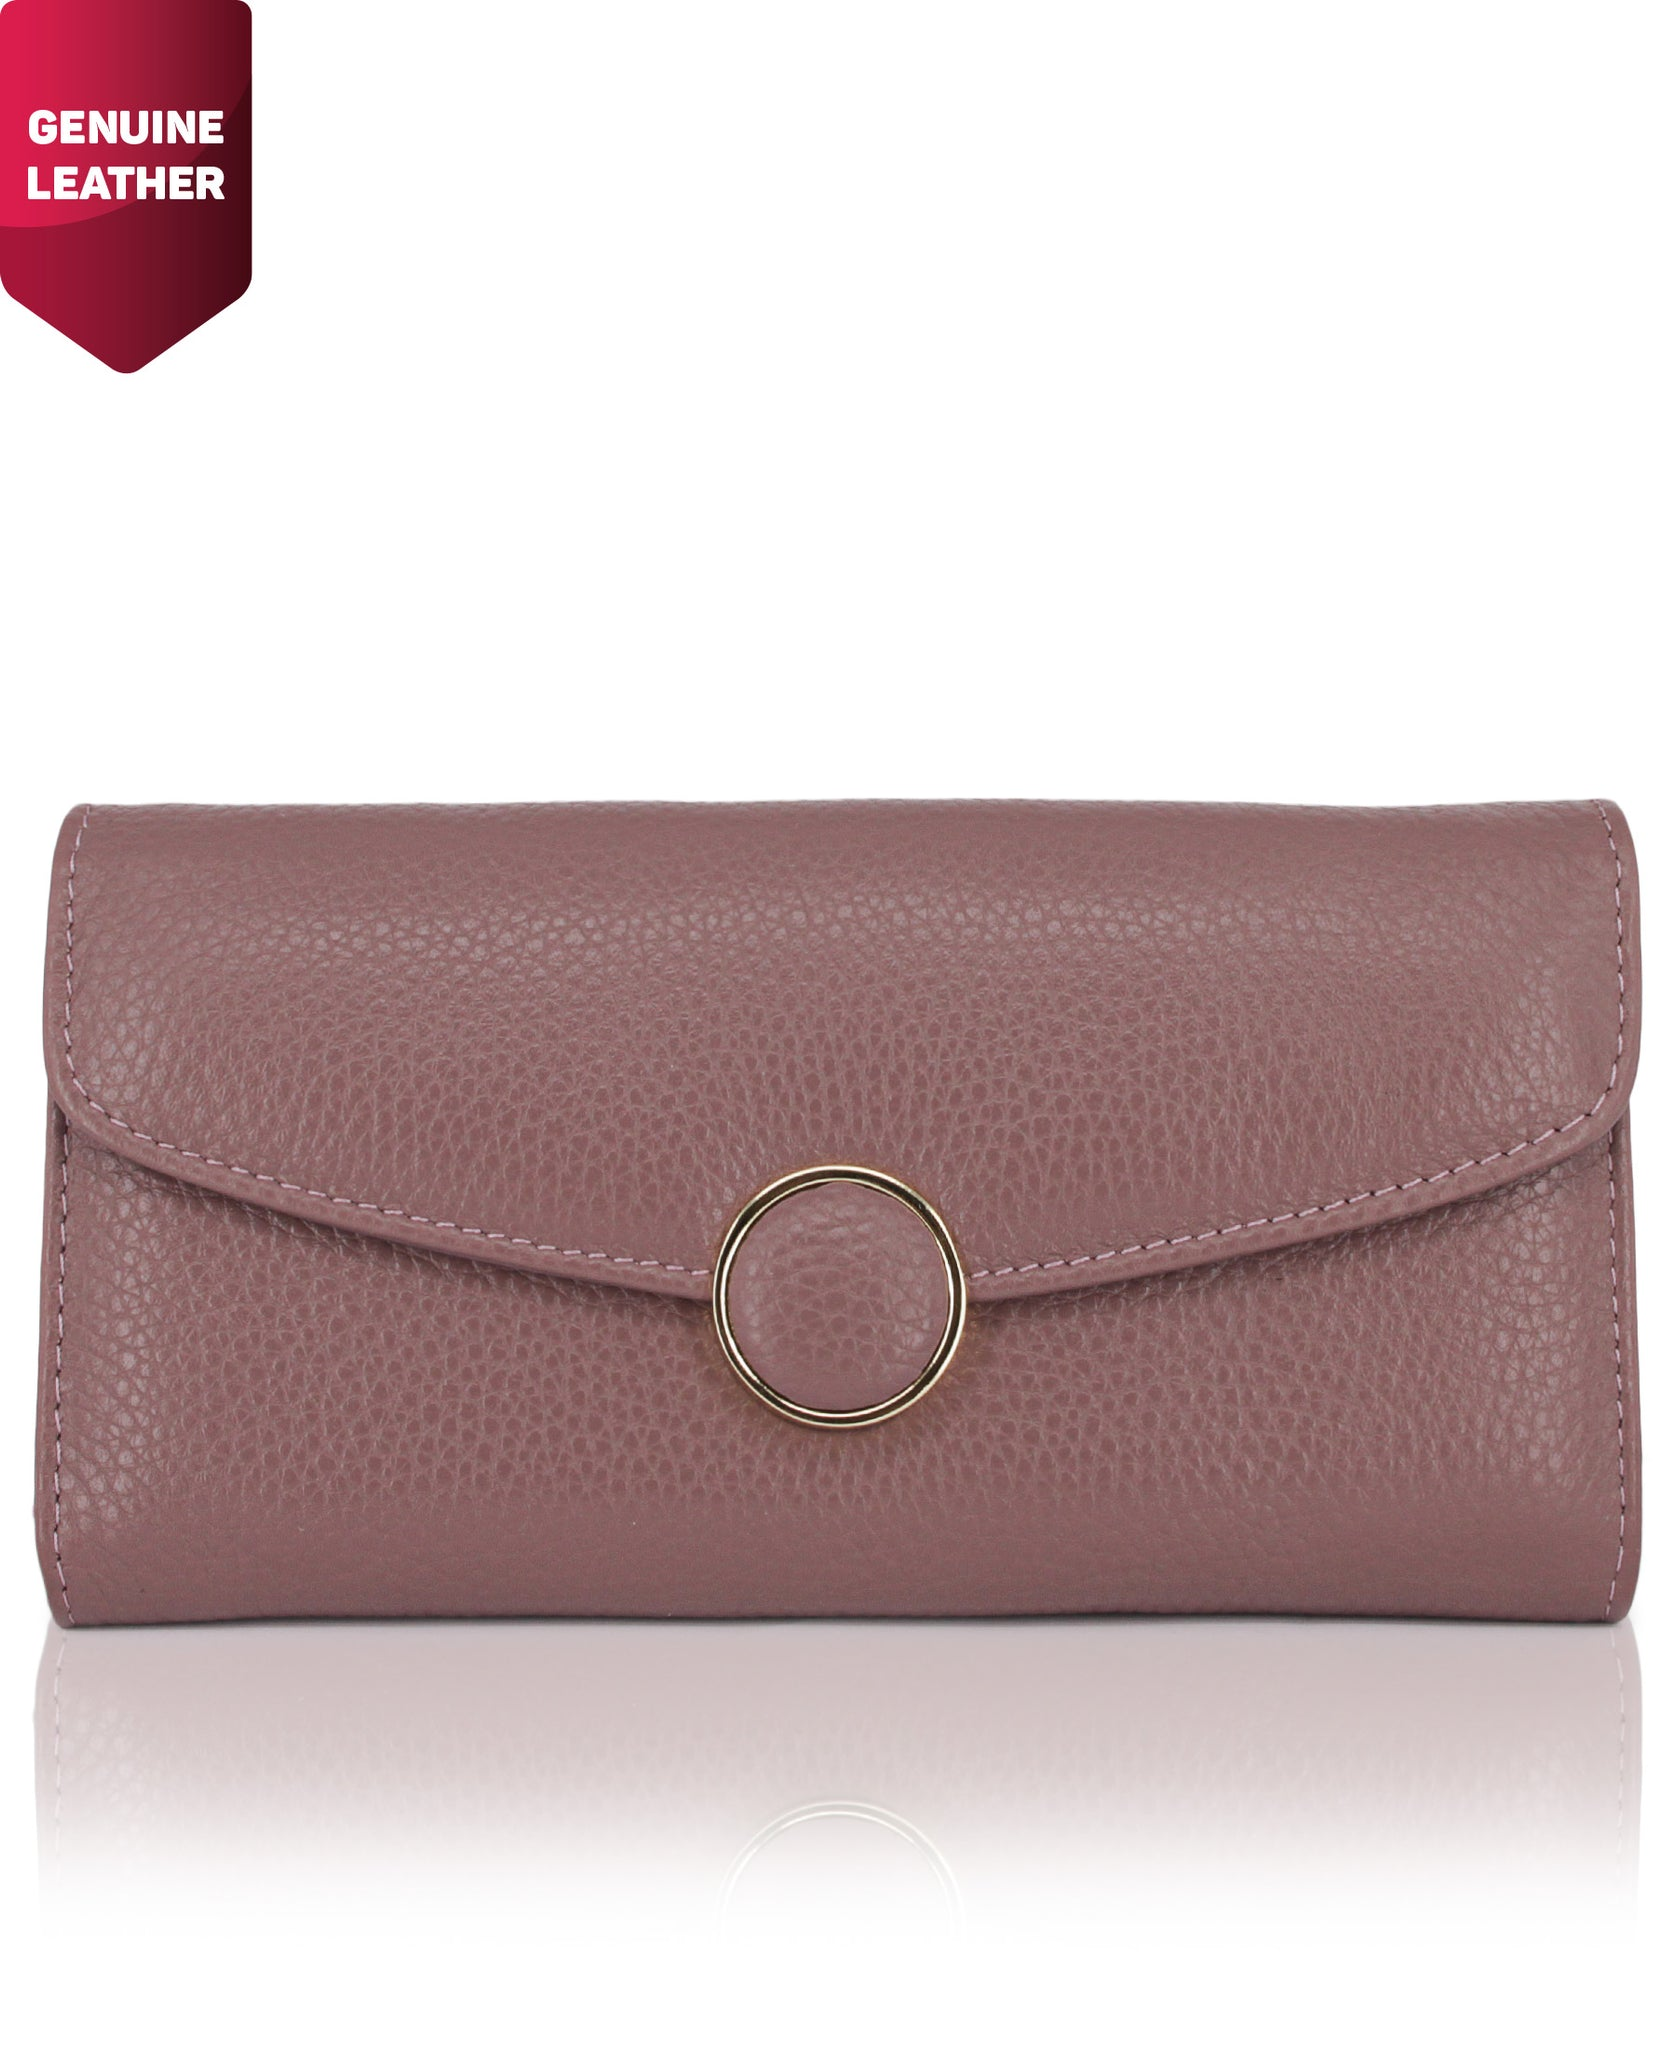 Genuine Leather Wallet - Purple